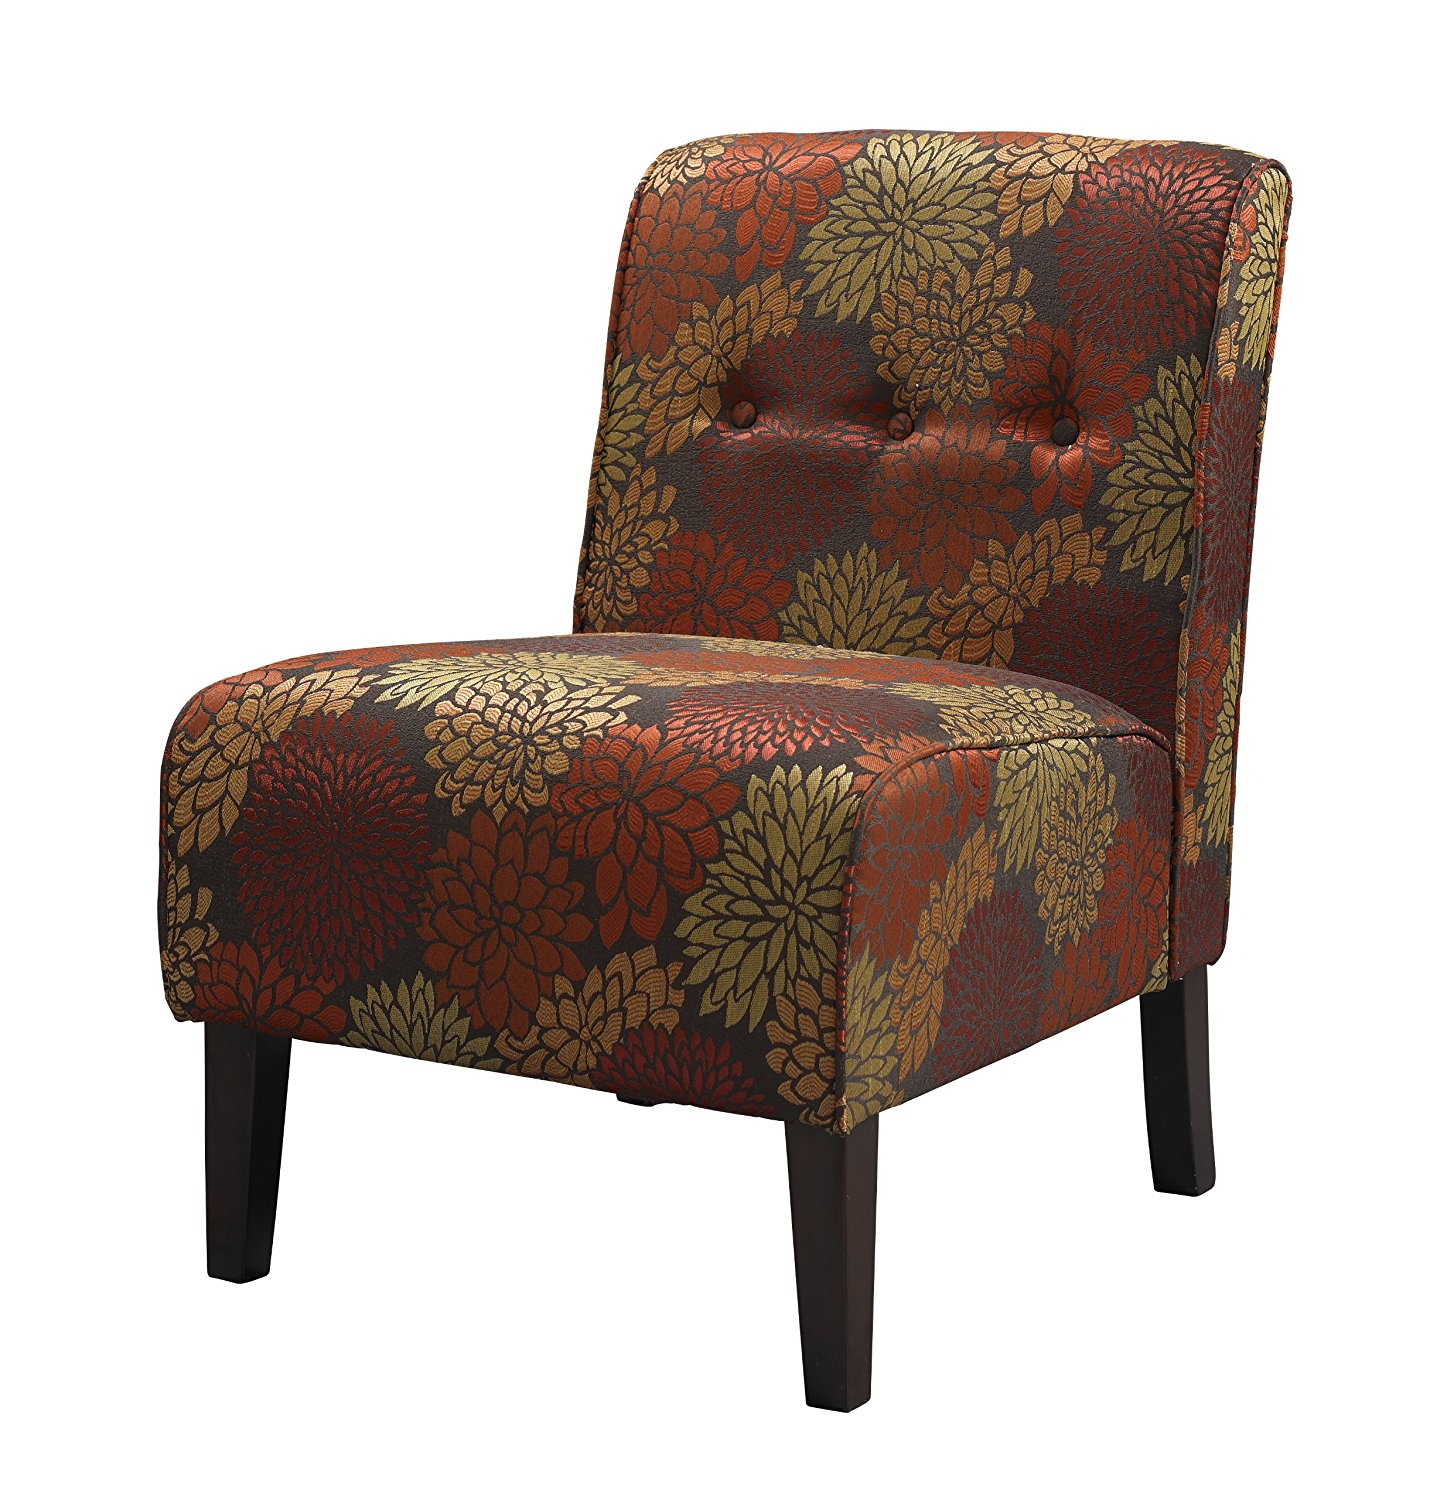 Classic accent chairs - Made With Sturdy Hardwood Construction The Coco Accent Chair From Linon Is Worth Having In Your Living Room It Is Where Classic Design Meets Contemporary